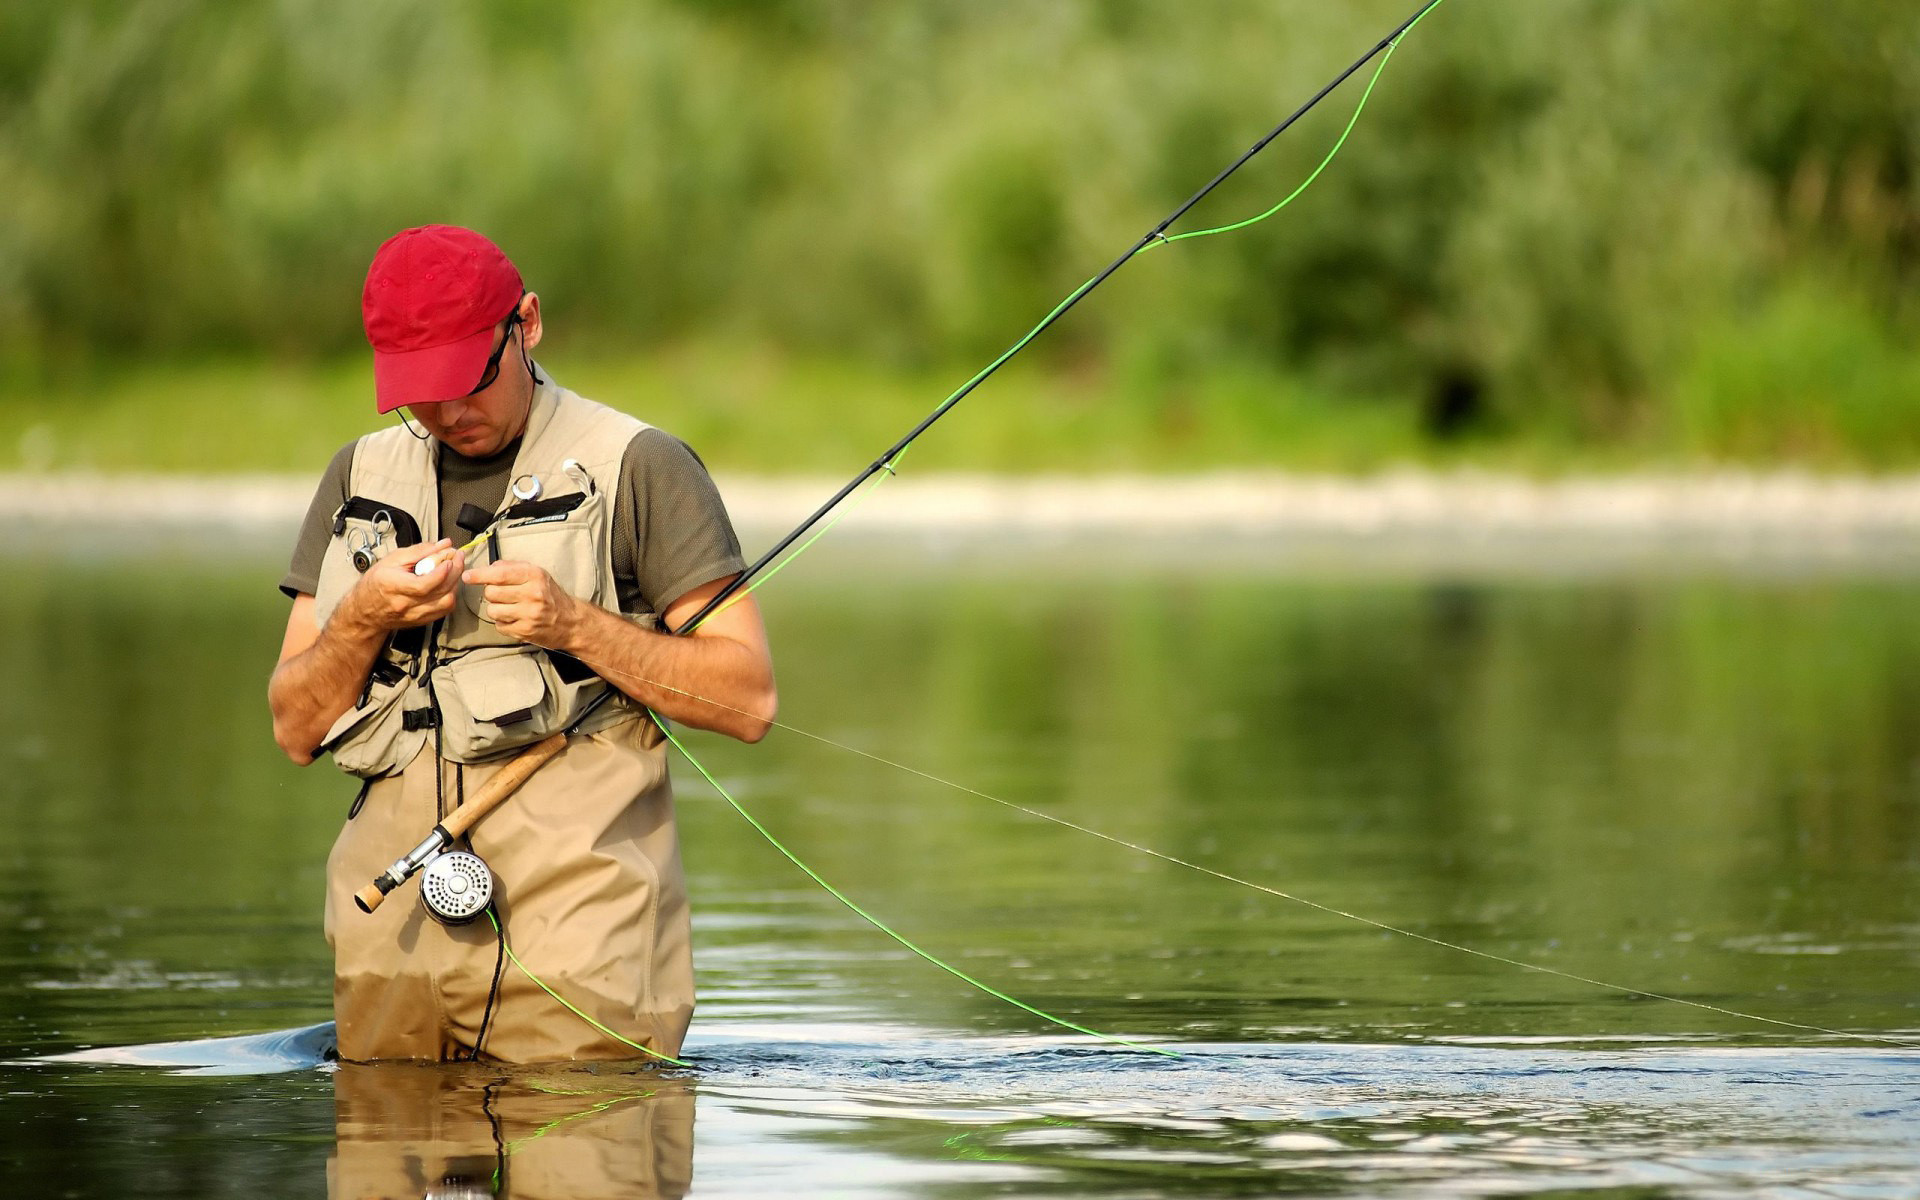 Bass fishing wallpaper backgrounds for Fishing for girls